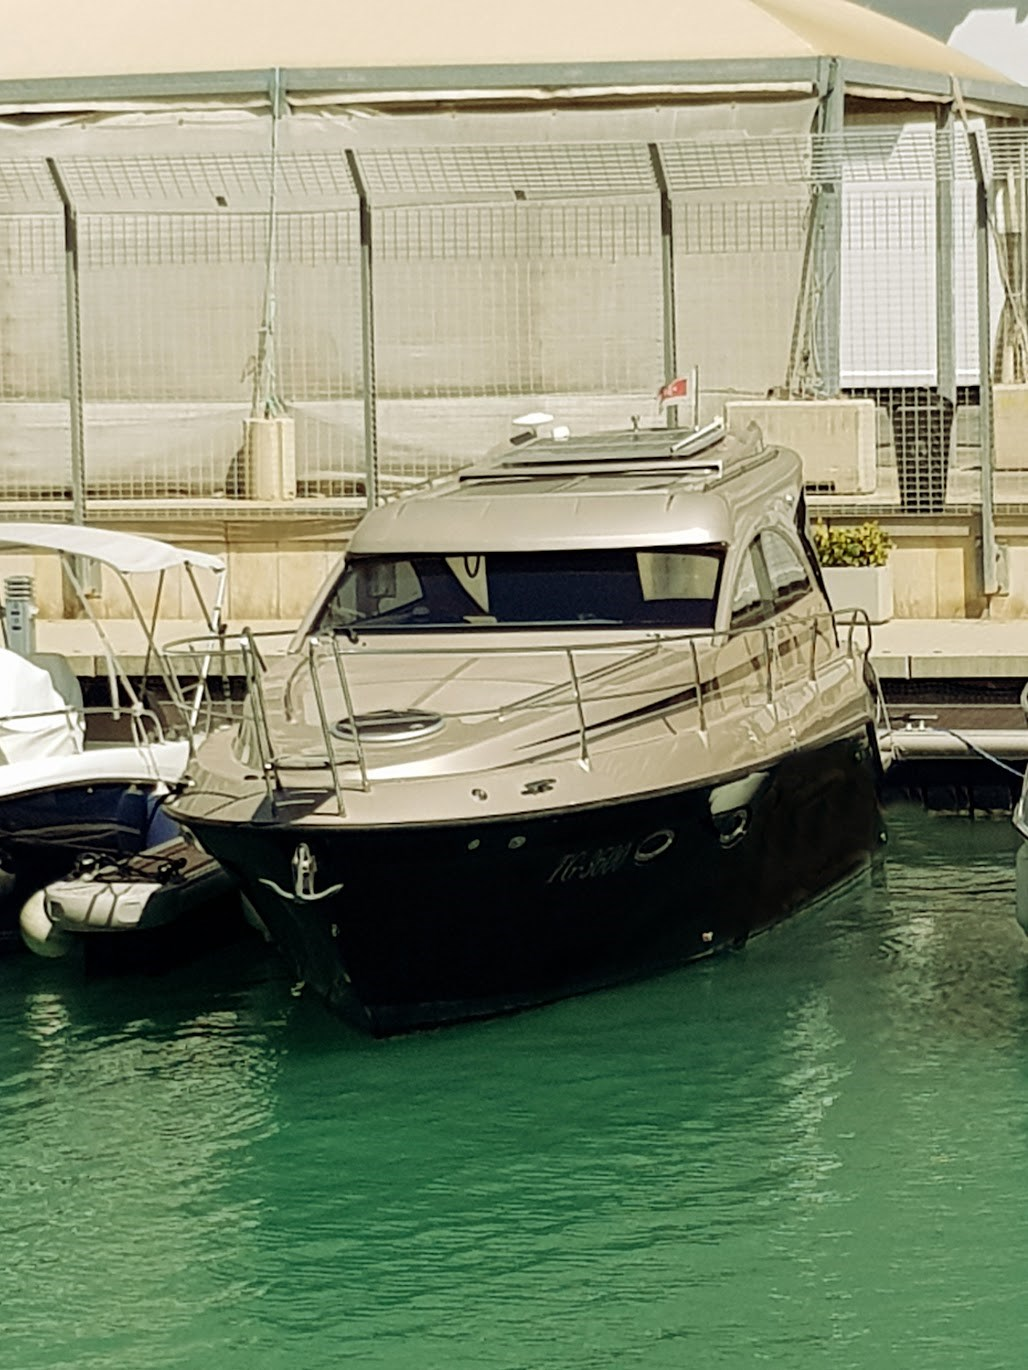 Rent / charter Luxury Yacht for Conference & Incentive / Meetings / Corporate, Full Day Tour, Half Day Tour & Private Charter in Malta & Gozo - Mirakul 30